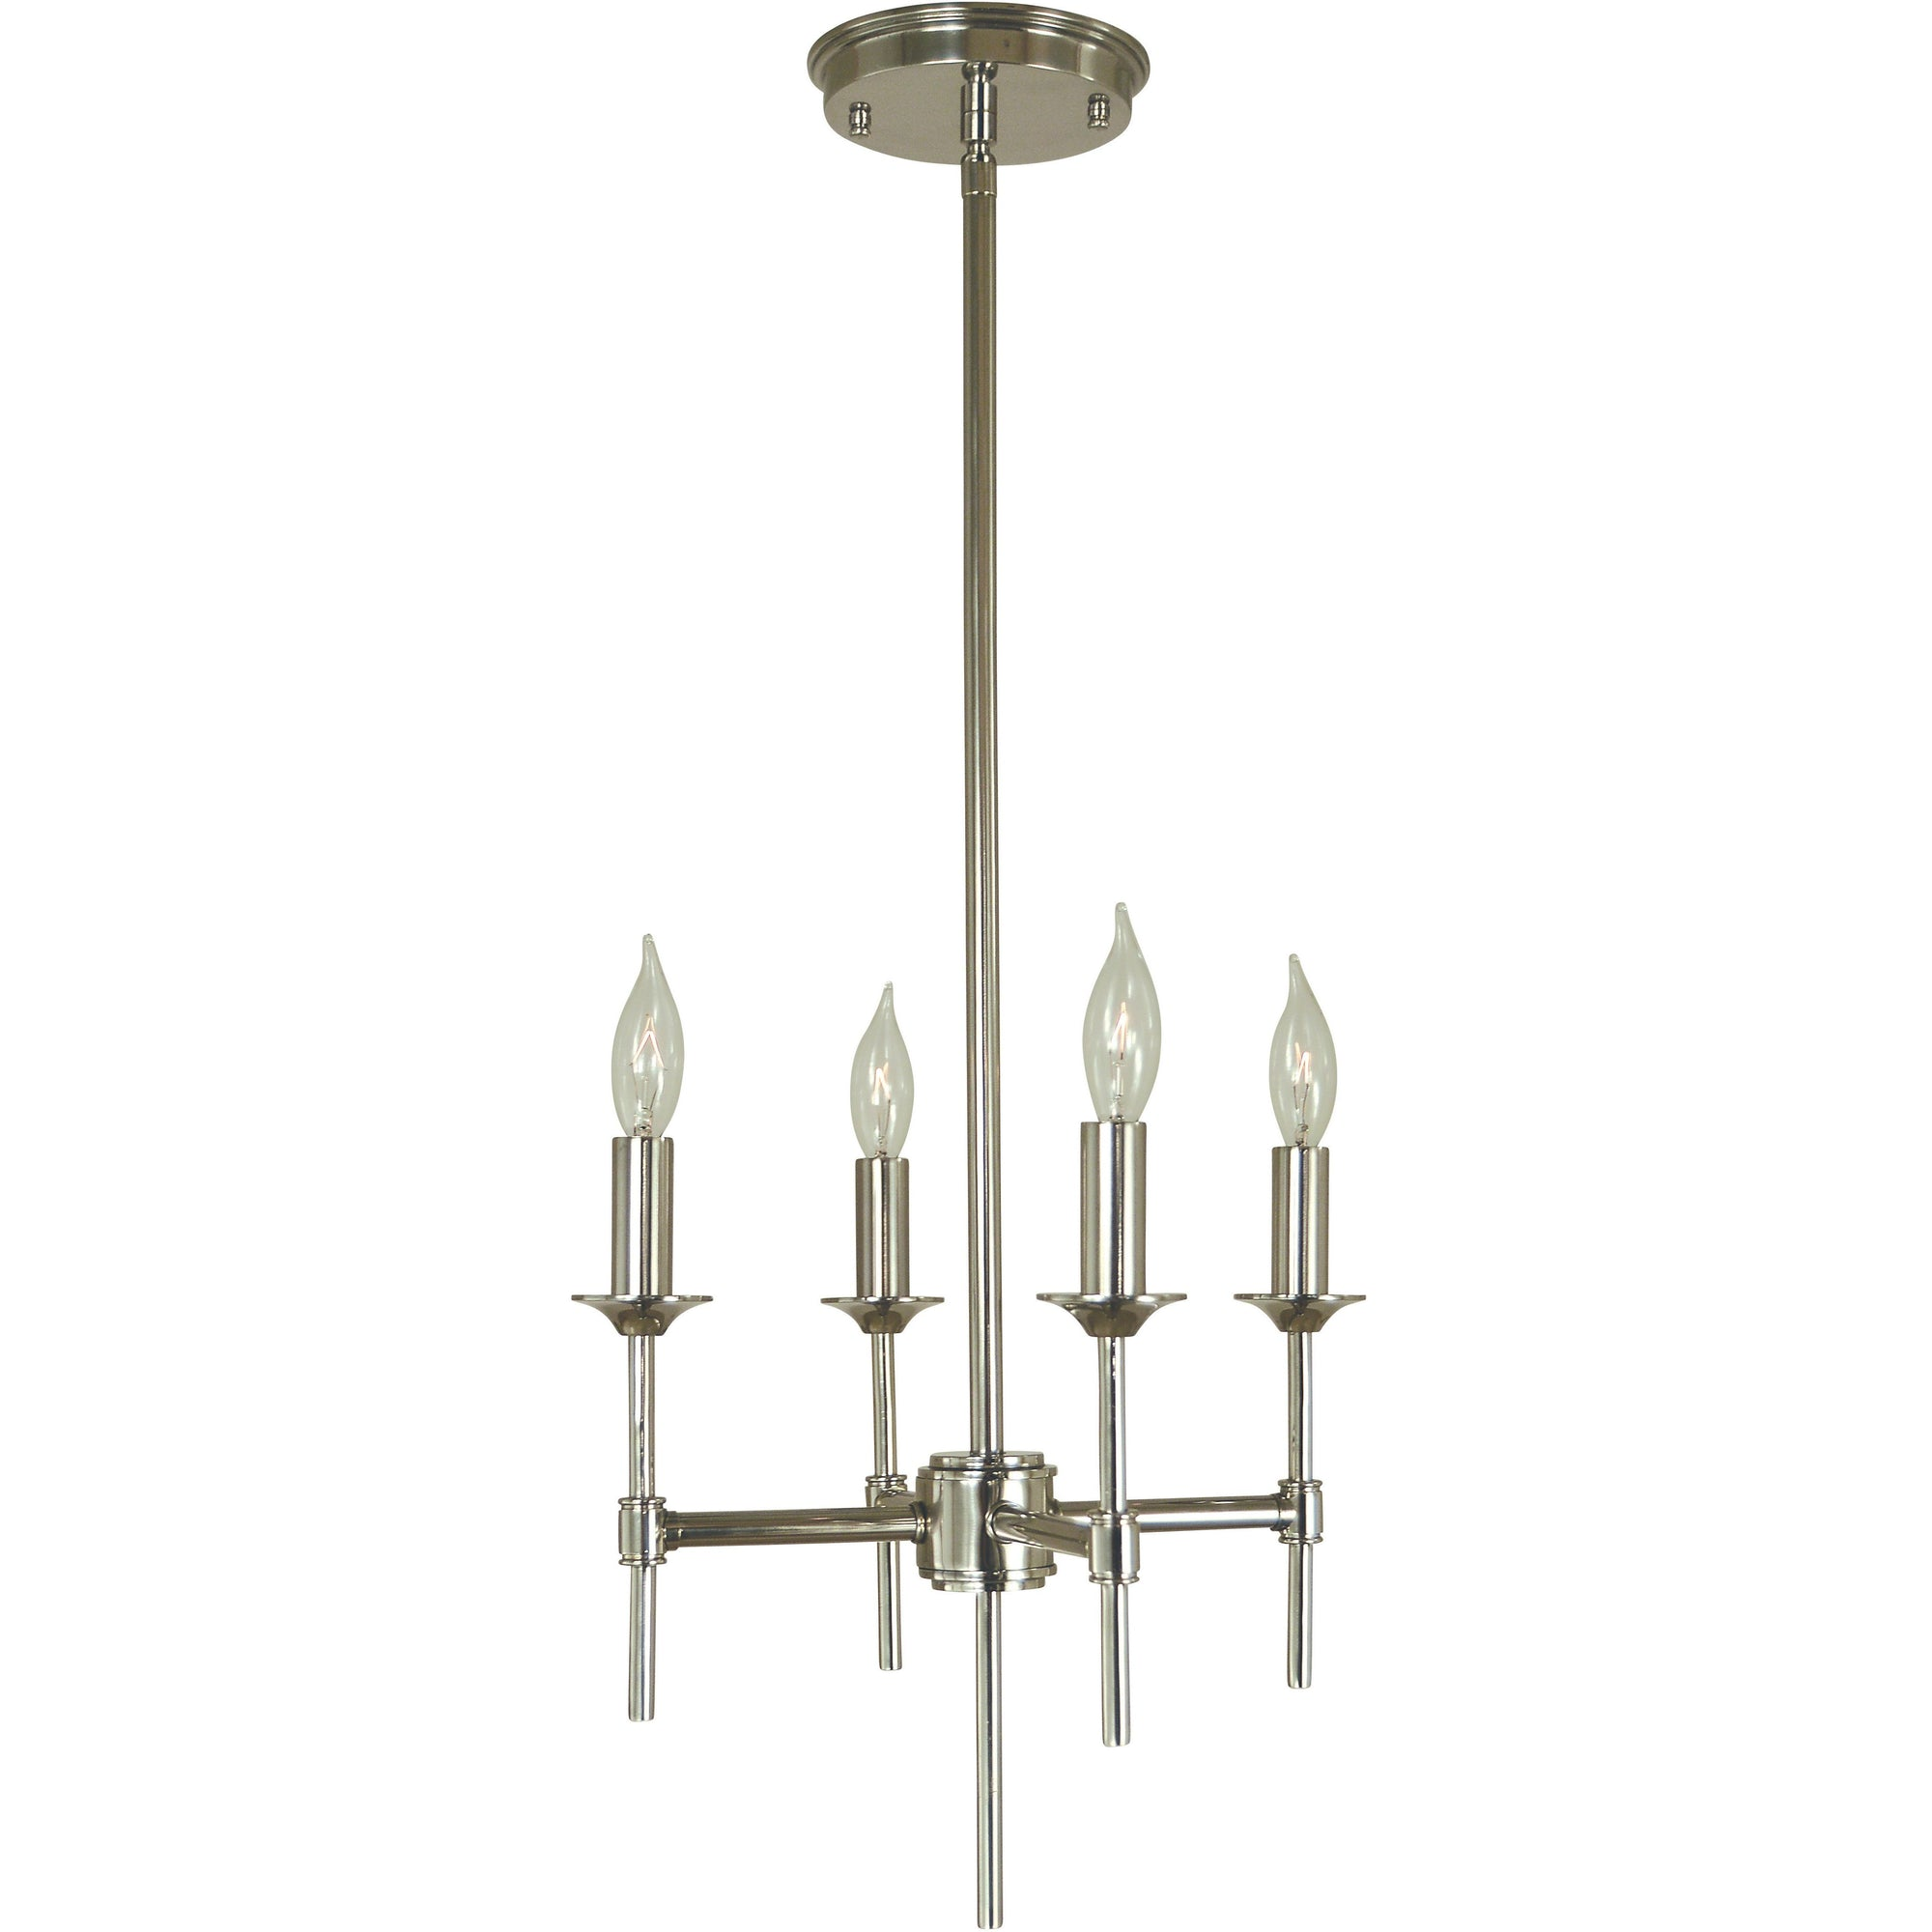 Framburg Mini Chandeliers Polished Nickel 4-Light Polished Nickel Chandler Chandelier by Framburg 4694